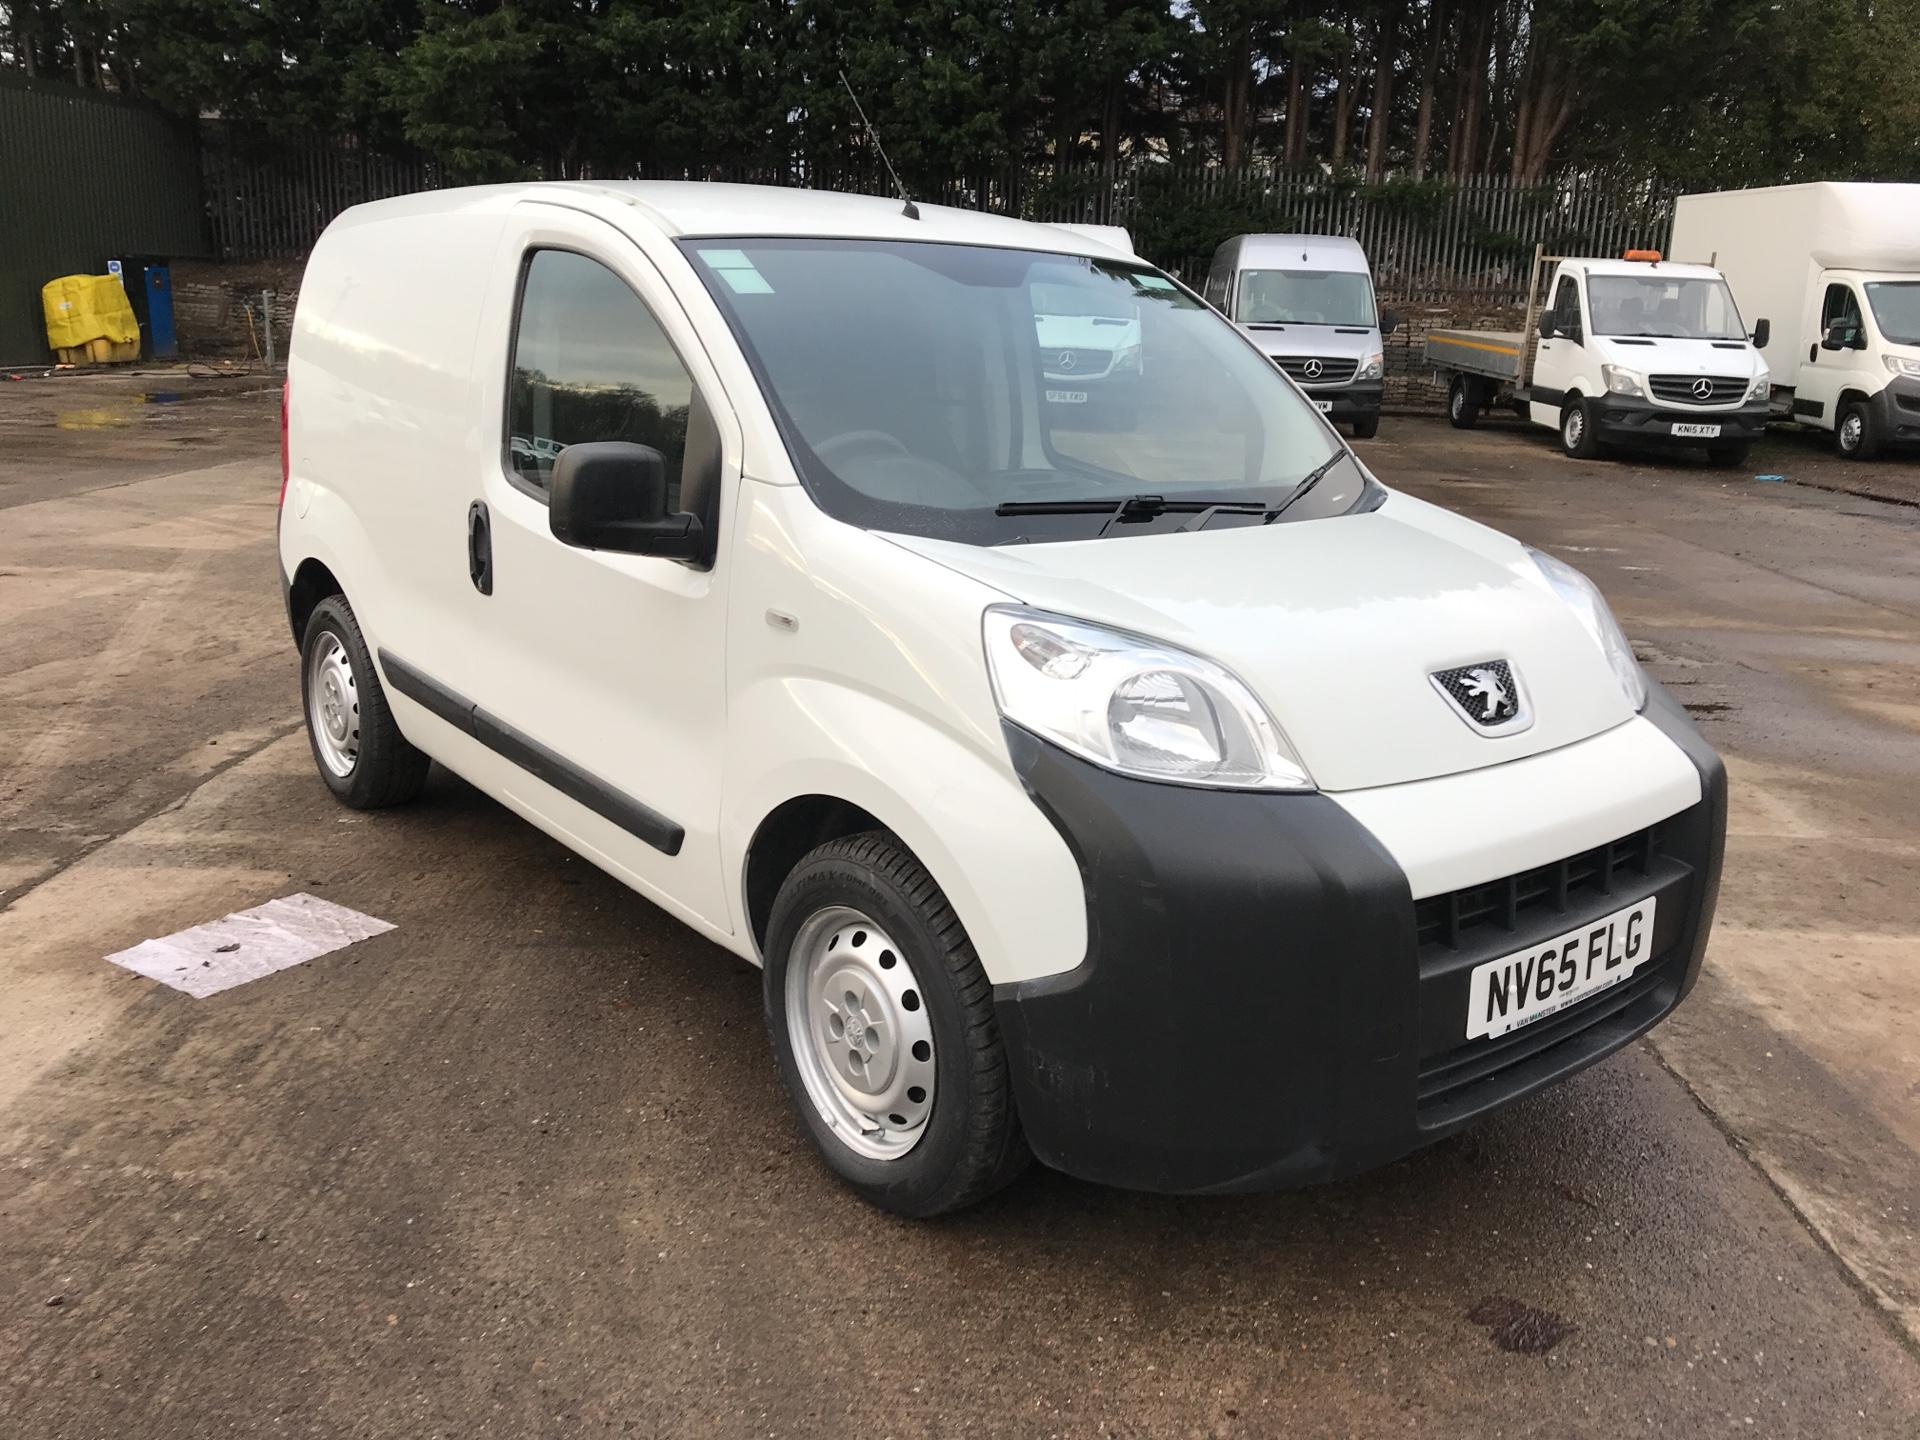 2015 Peugeot Bipper 1.3 HDI 75PS S PLUS PACK NON S/S EURO 5 (NV65FLG)